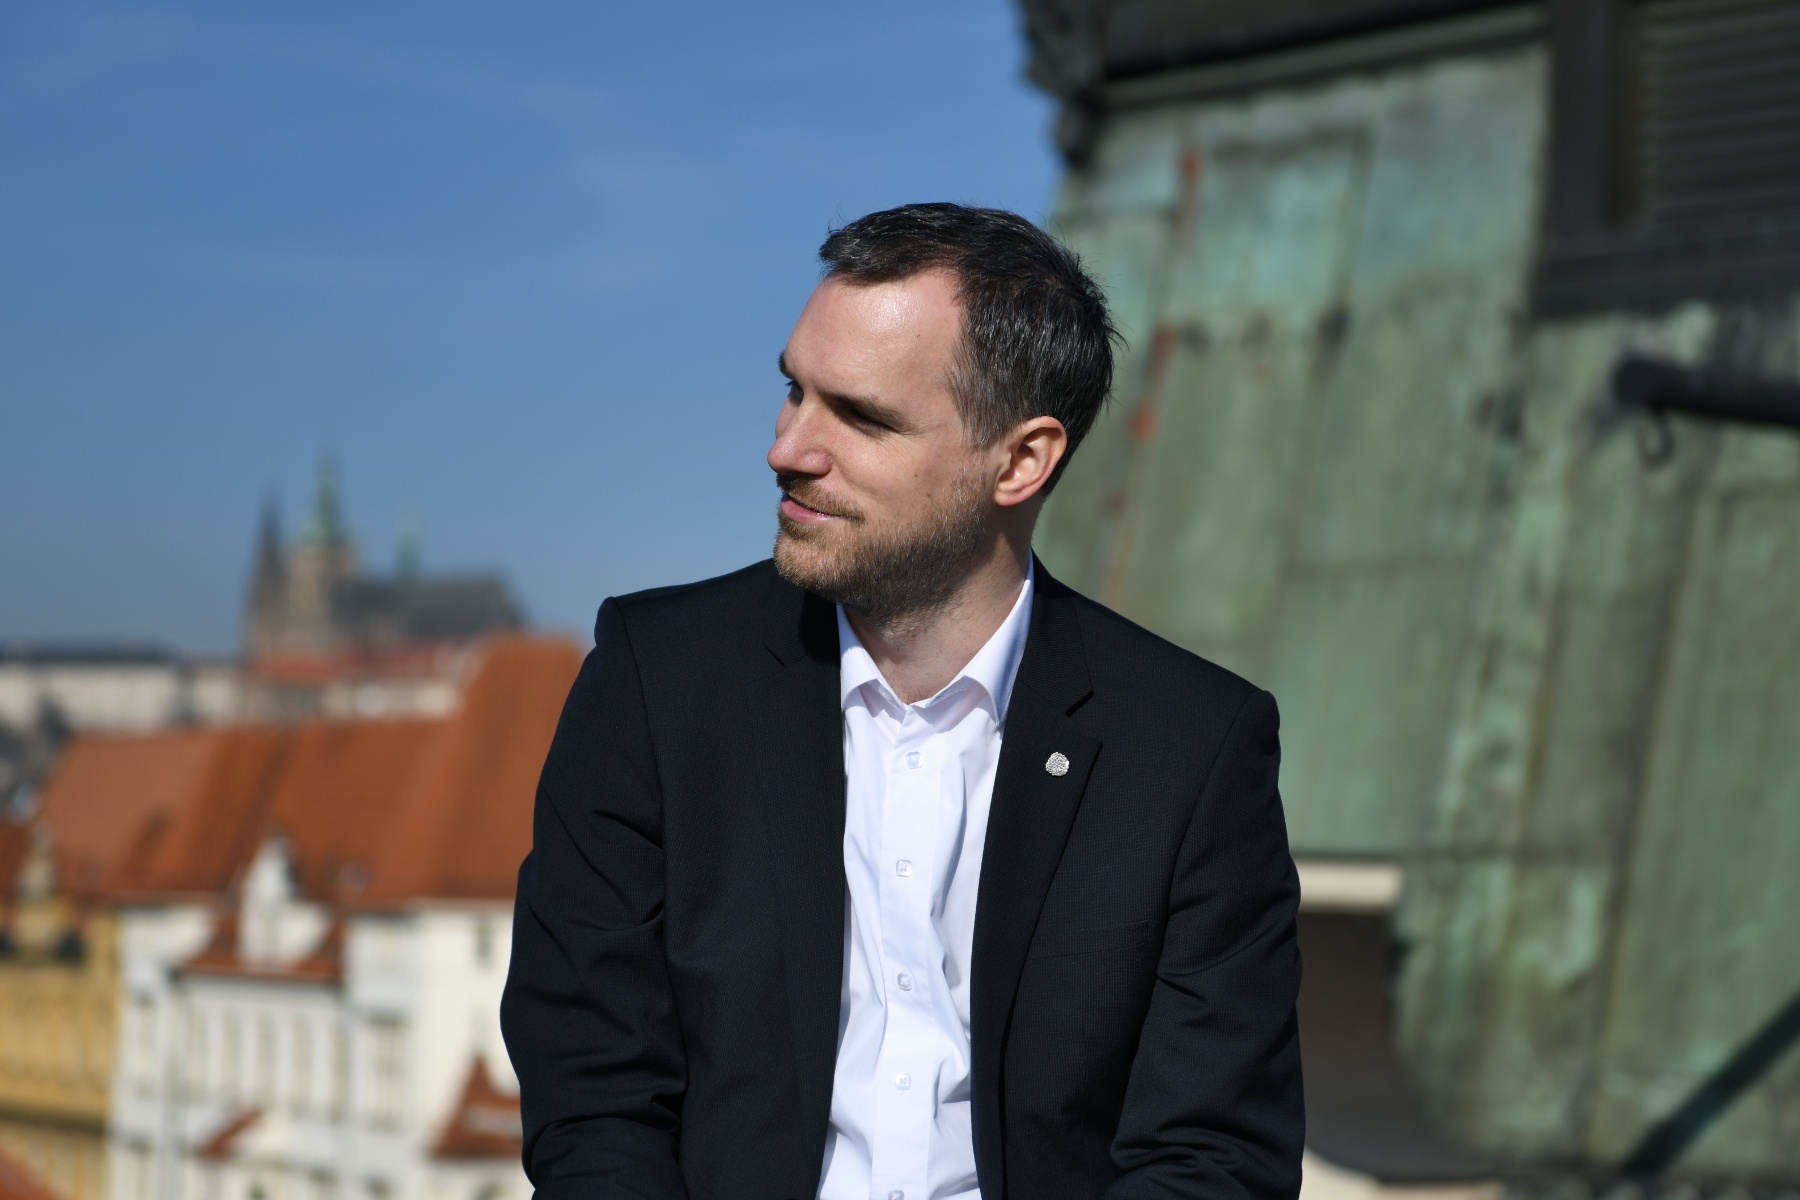 Prague Mayor Zdeněk Hřib on tourism, China, Taiwan – and city's two tanks | Radio Prague